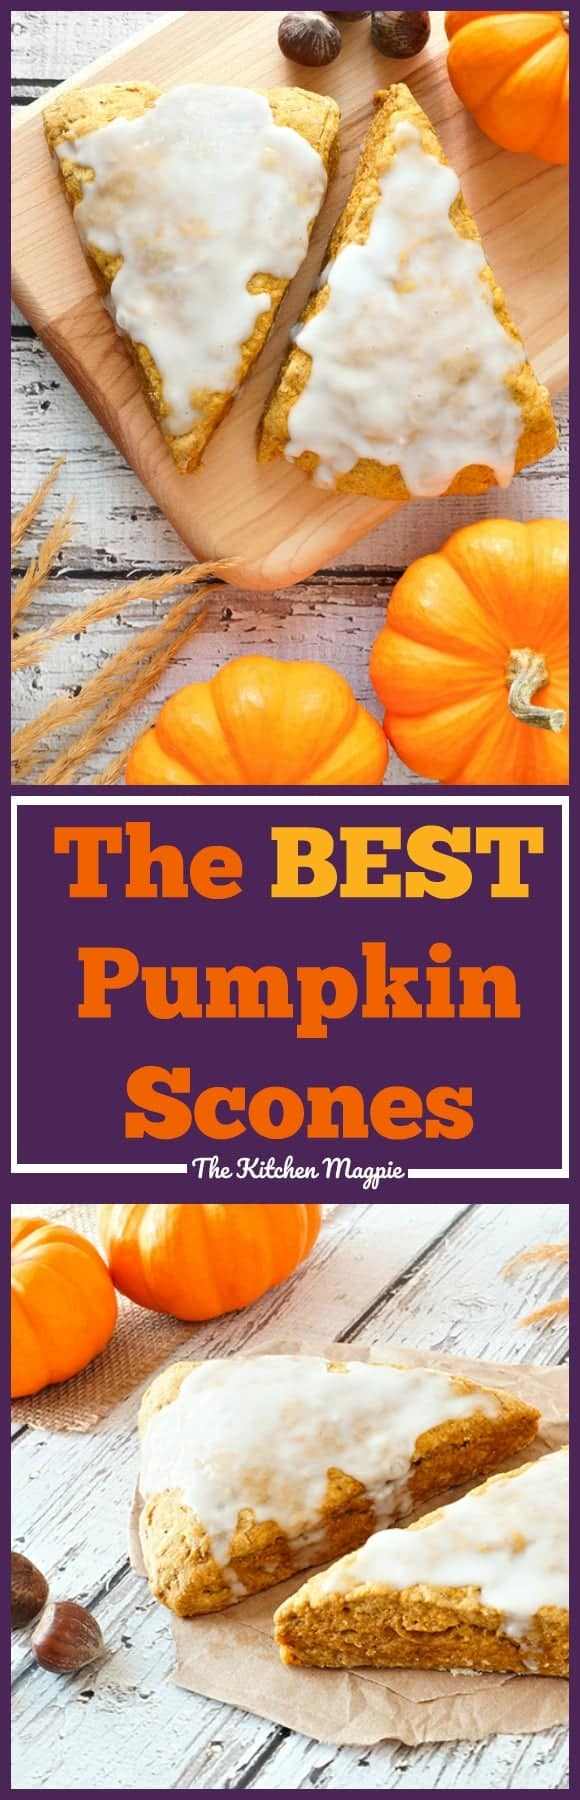 Pumpkin Scones ( Starbucks Copycat!). If you love Starbucks pumpkin scones,you will love these! #Starbucks #scones #baking #recipe #pumpkin Recipe from @kitchenmagpie